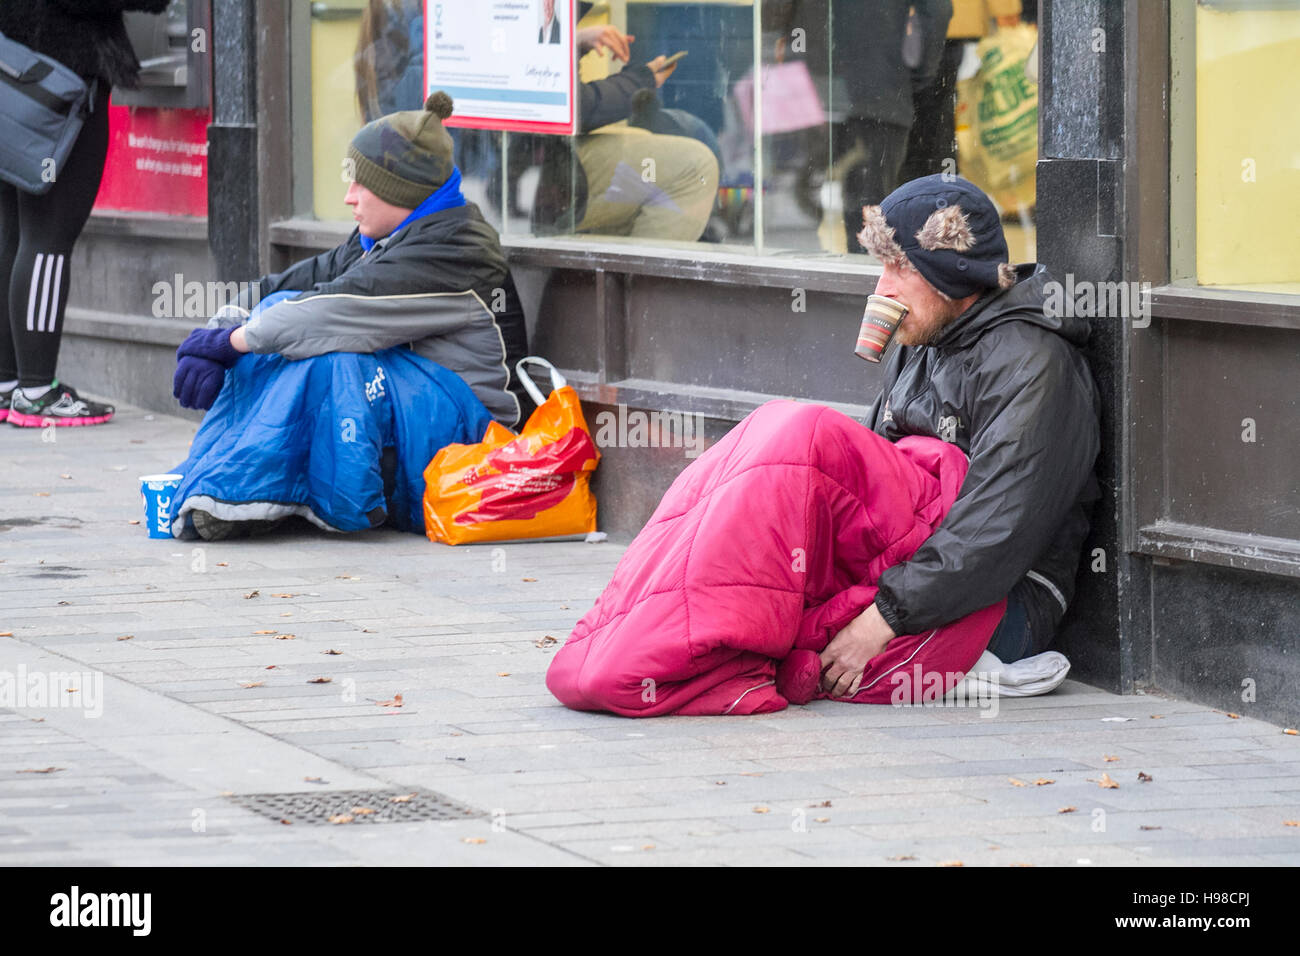 homeless person on the streets of liverpool merseyside